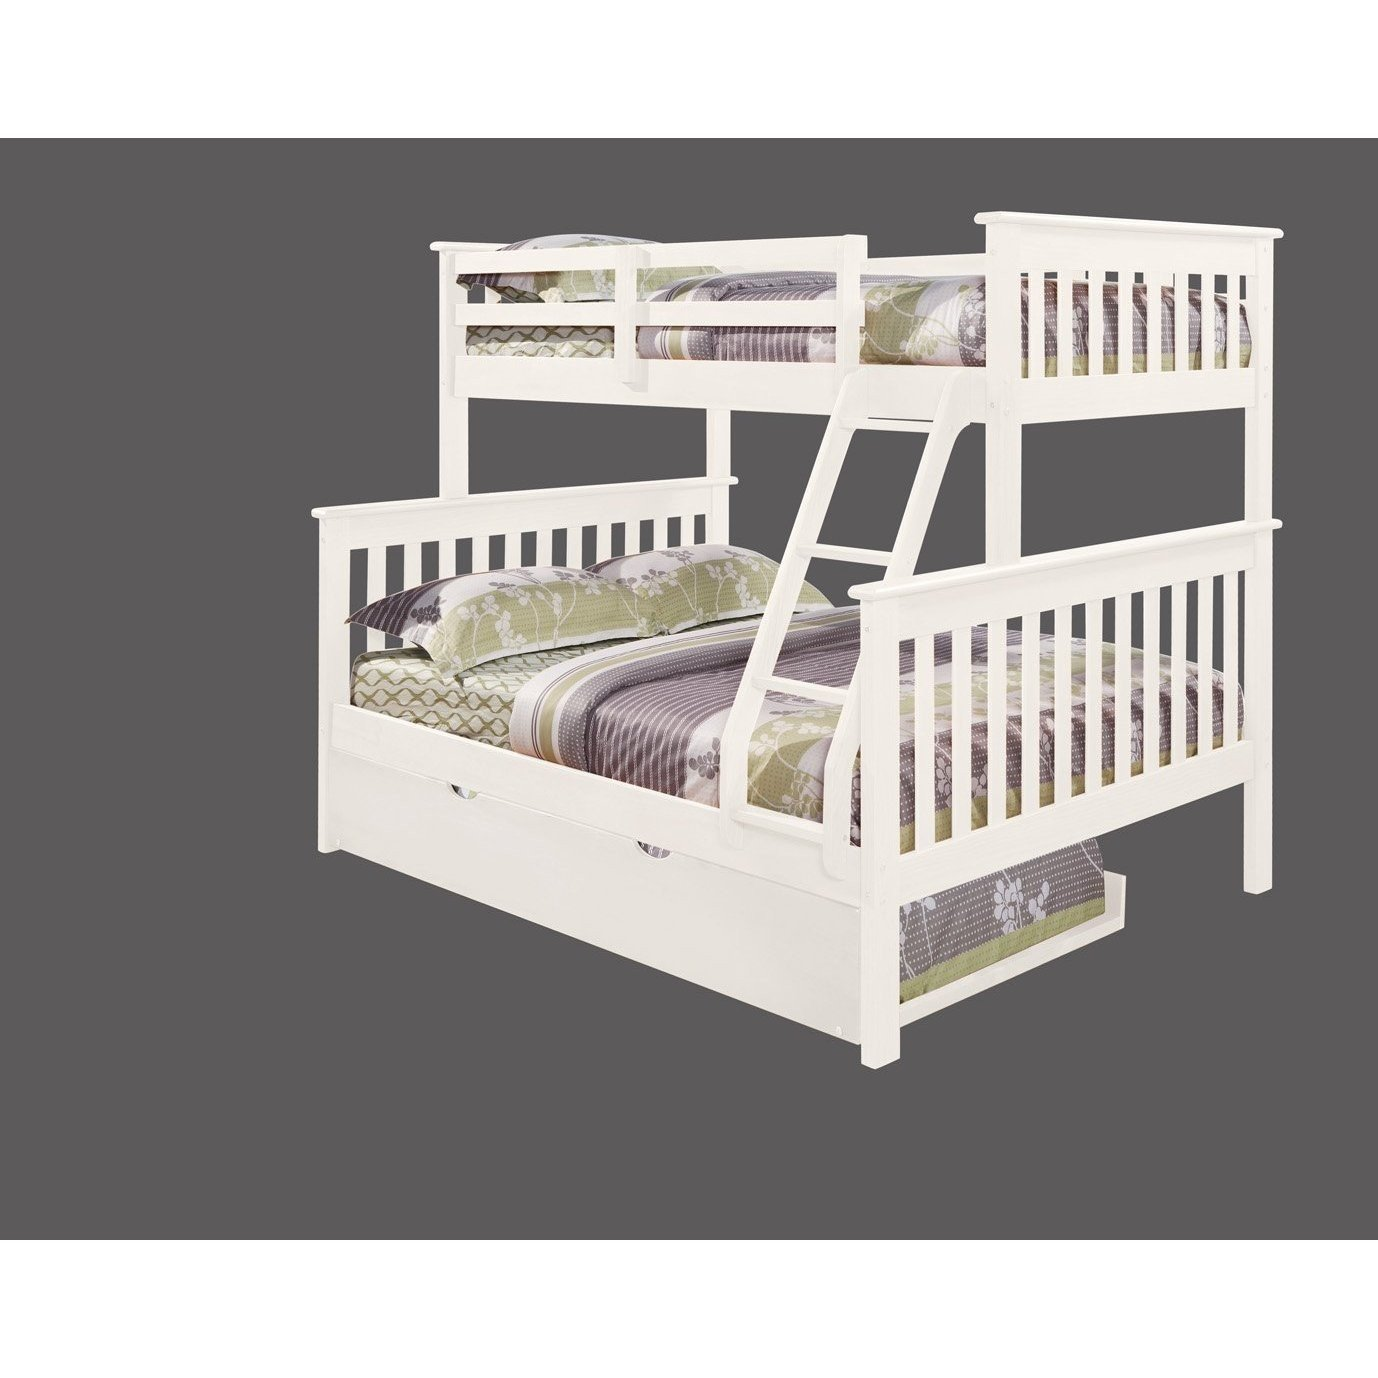 Amazon.com: Bunk Bed Twin over Full Mission Style with Trundle in ...